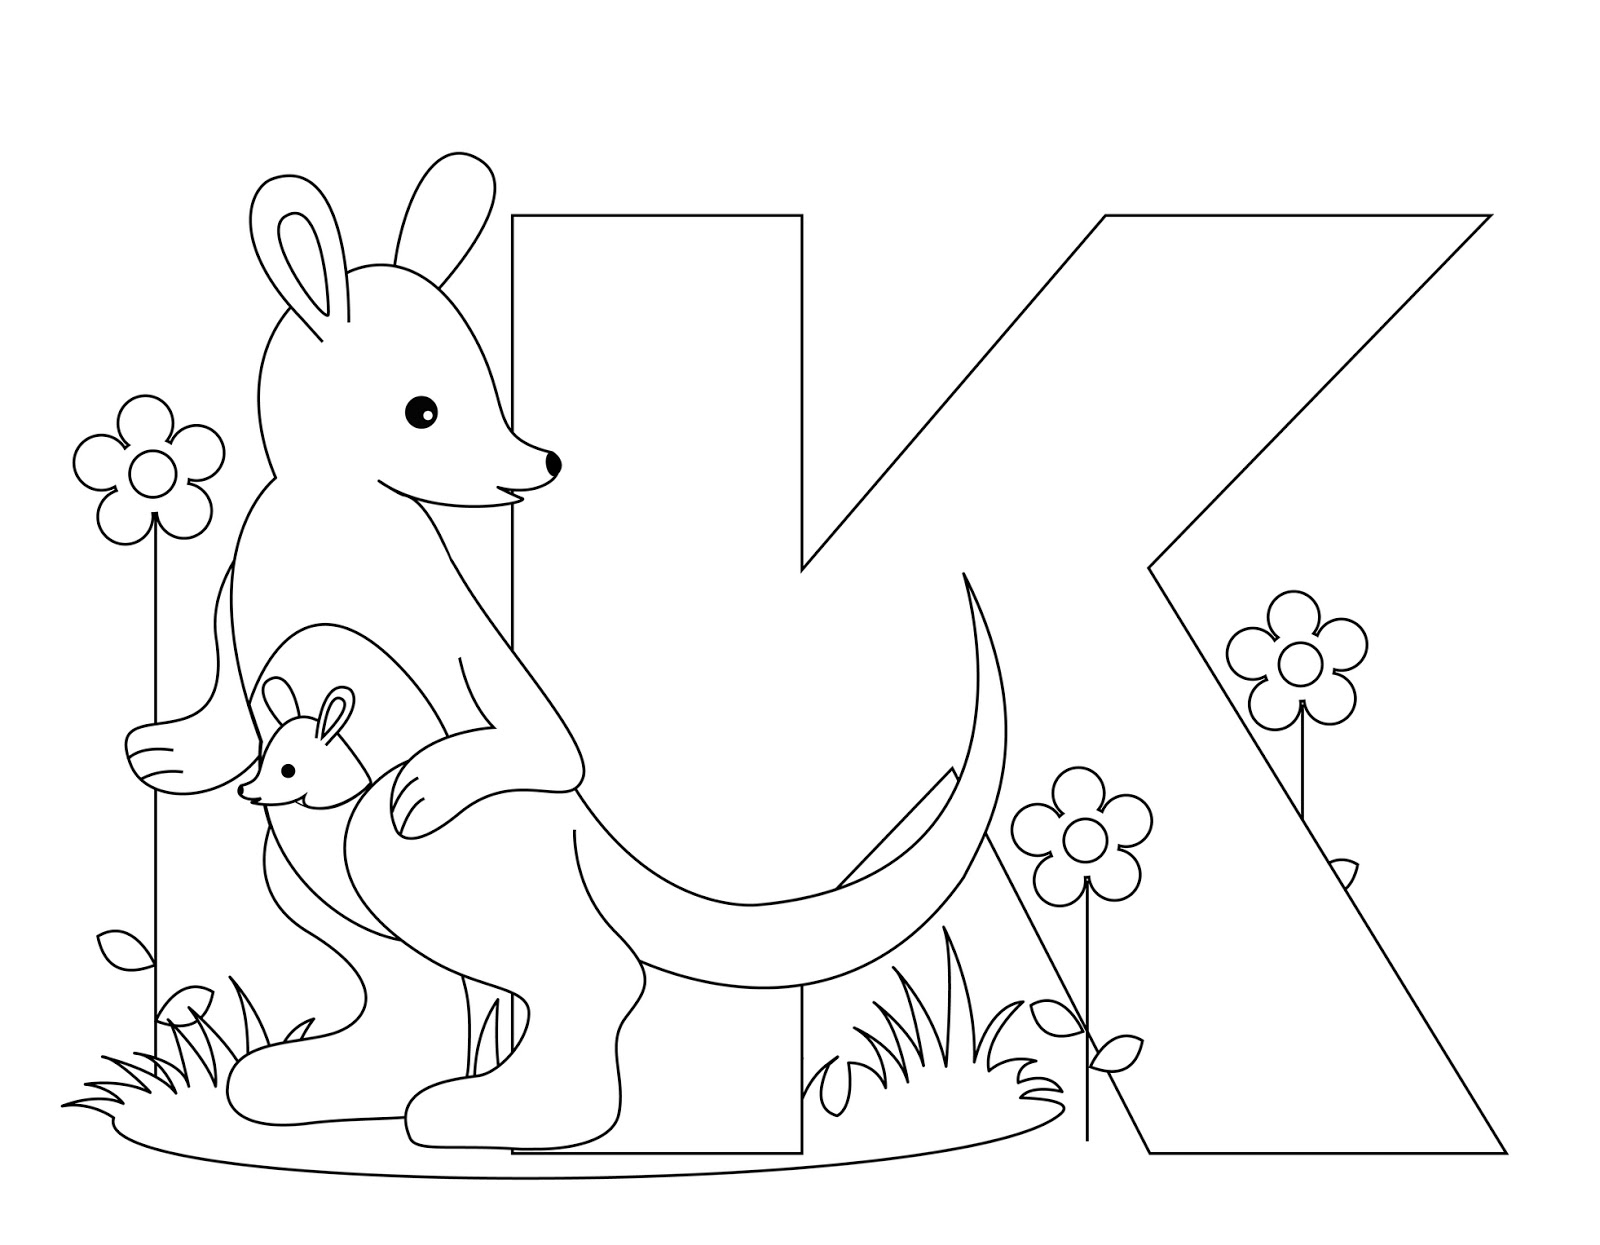 k coloring pages for kids - photo #19